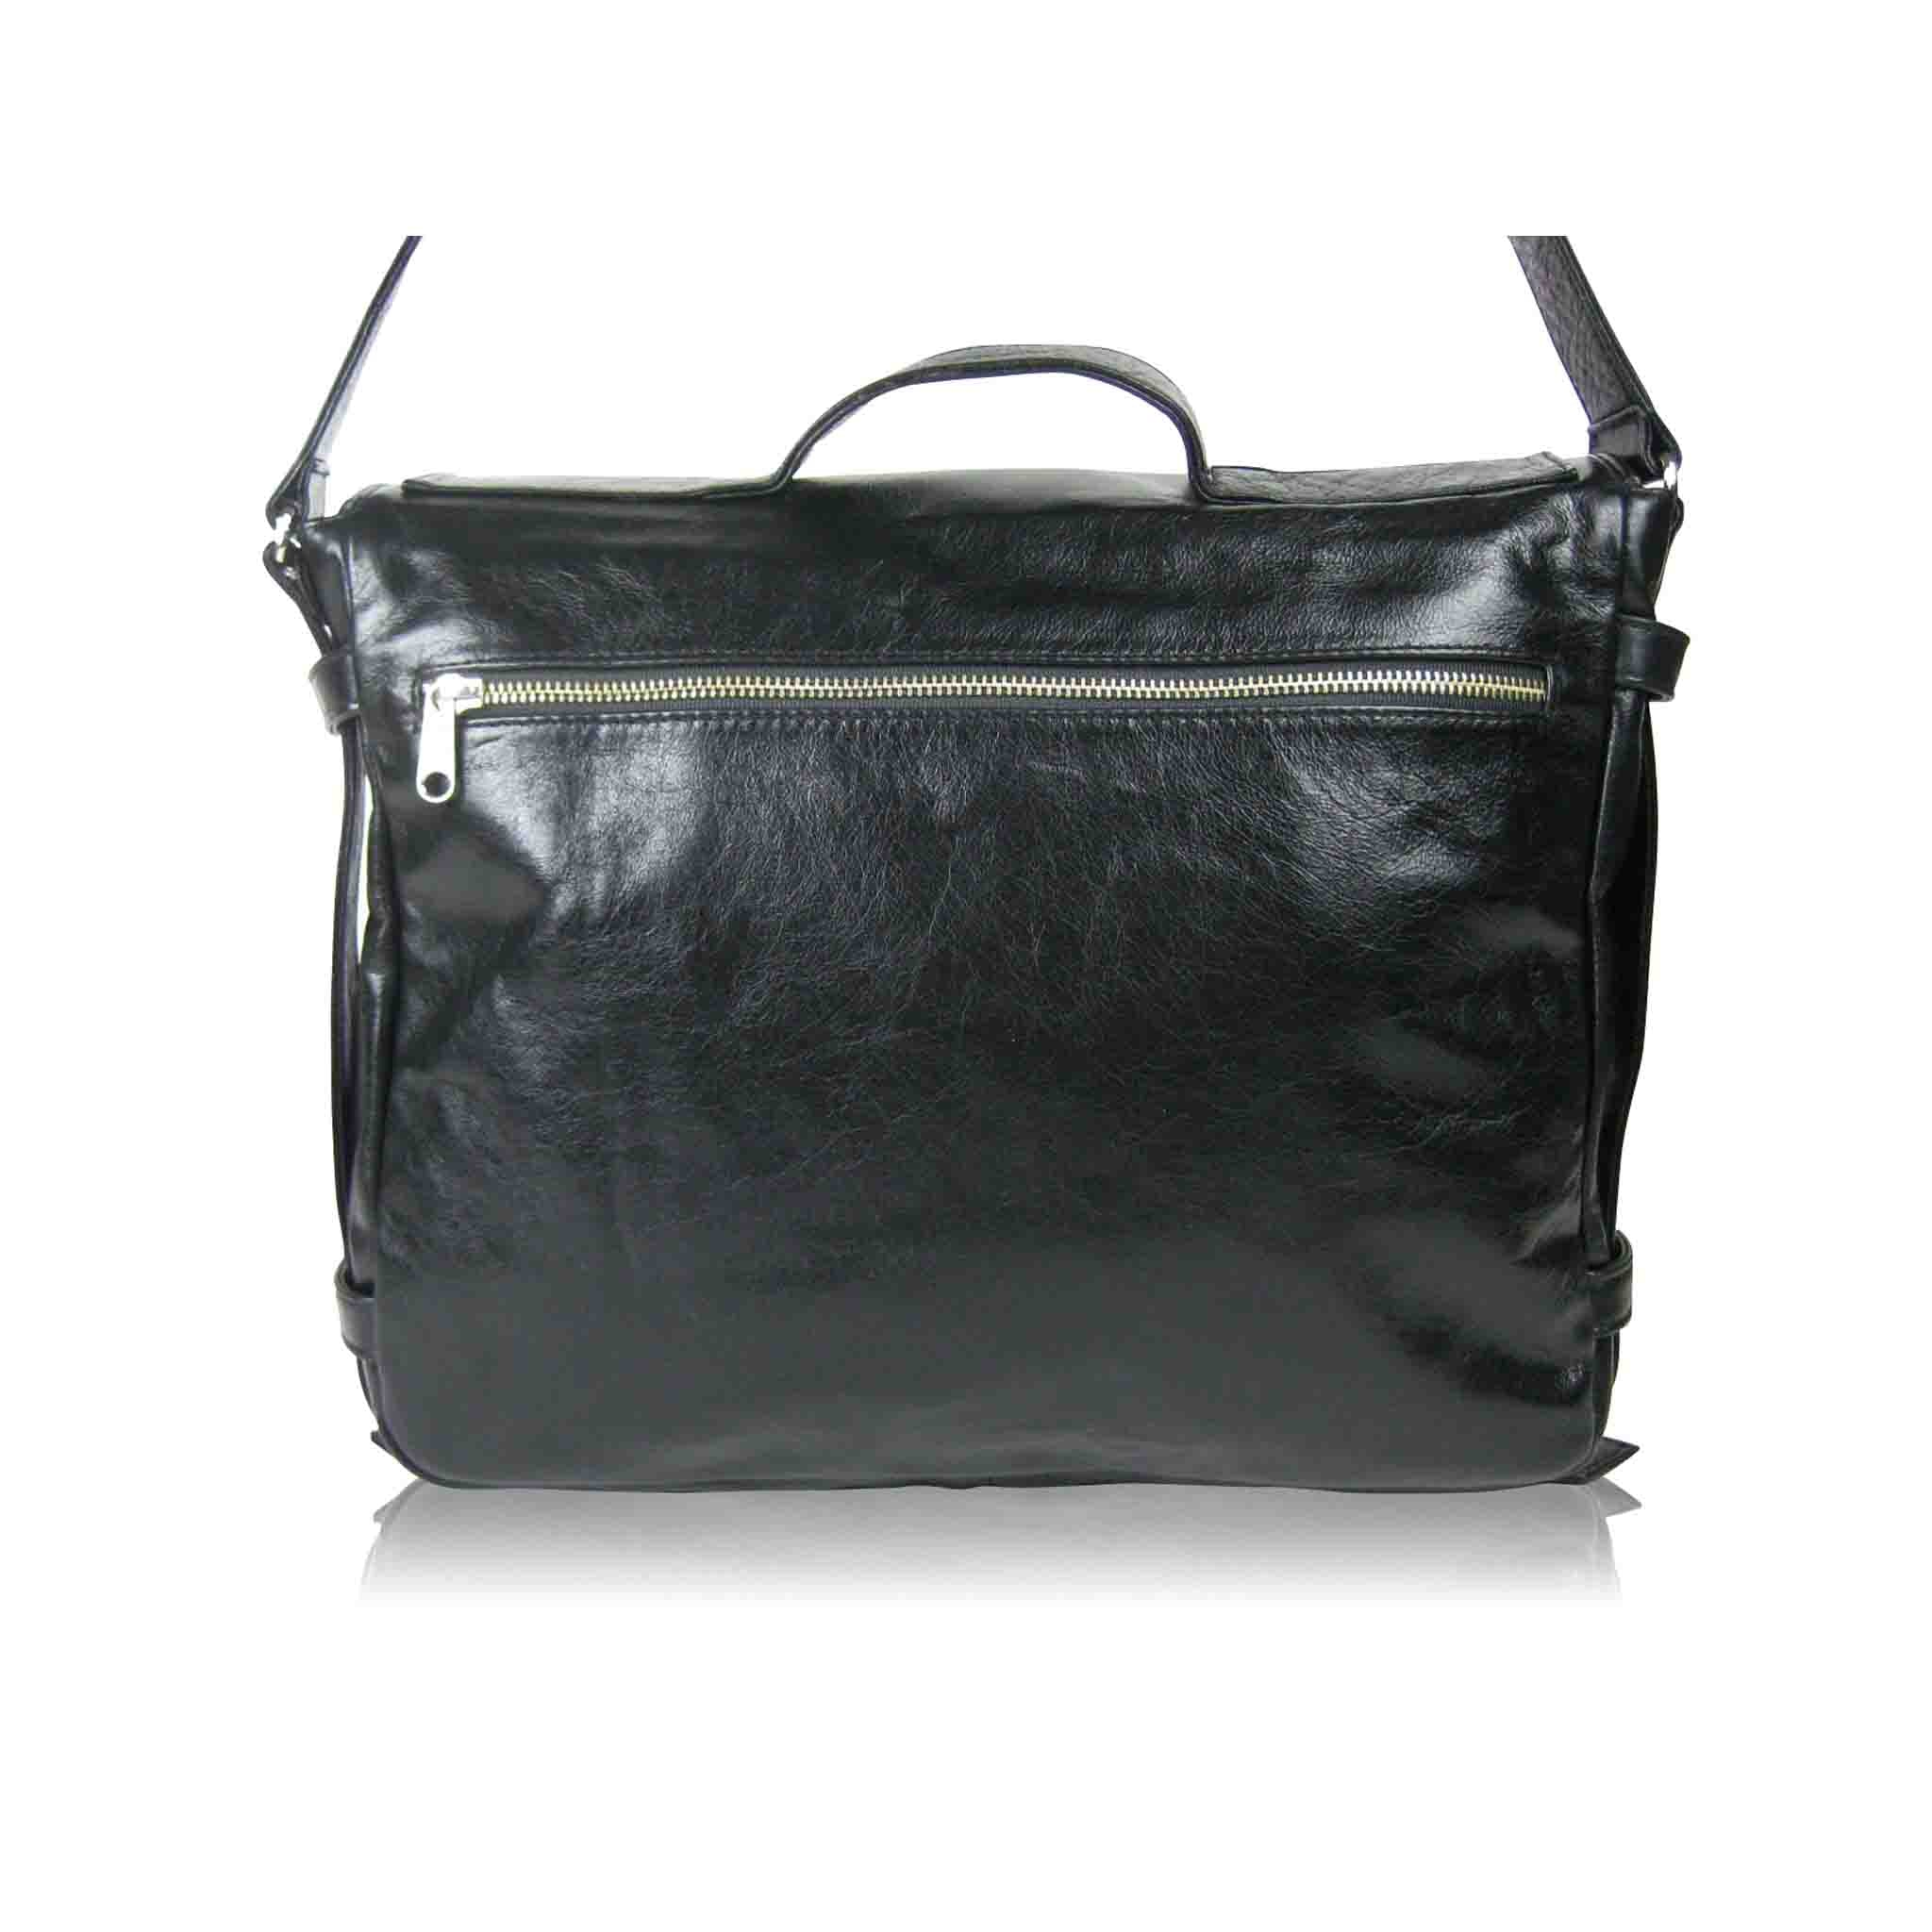 BLACK LEATHER SHOULDER BAG MEN'S ABBRECHEN  MESSENGER